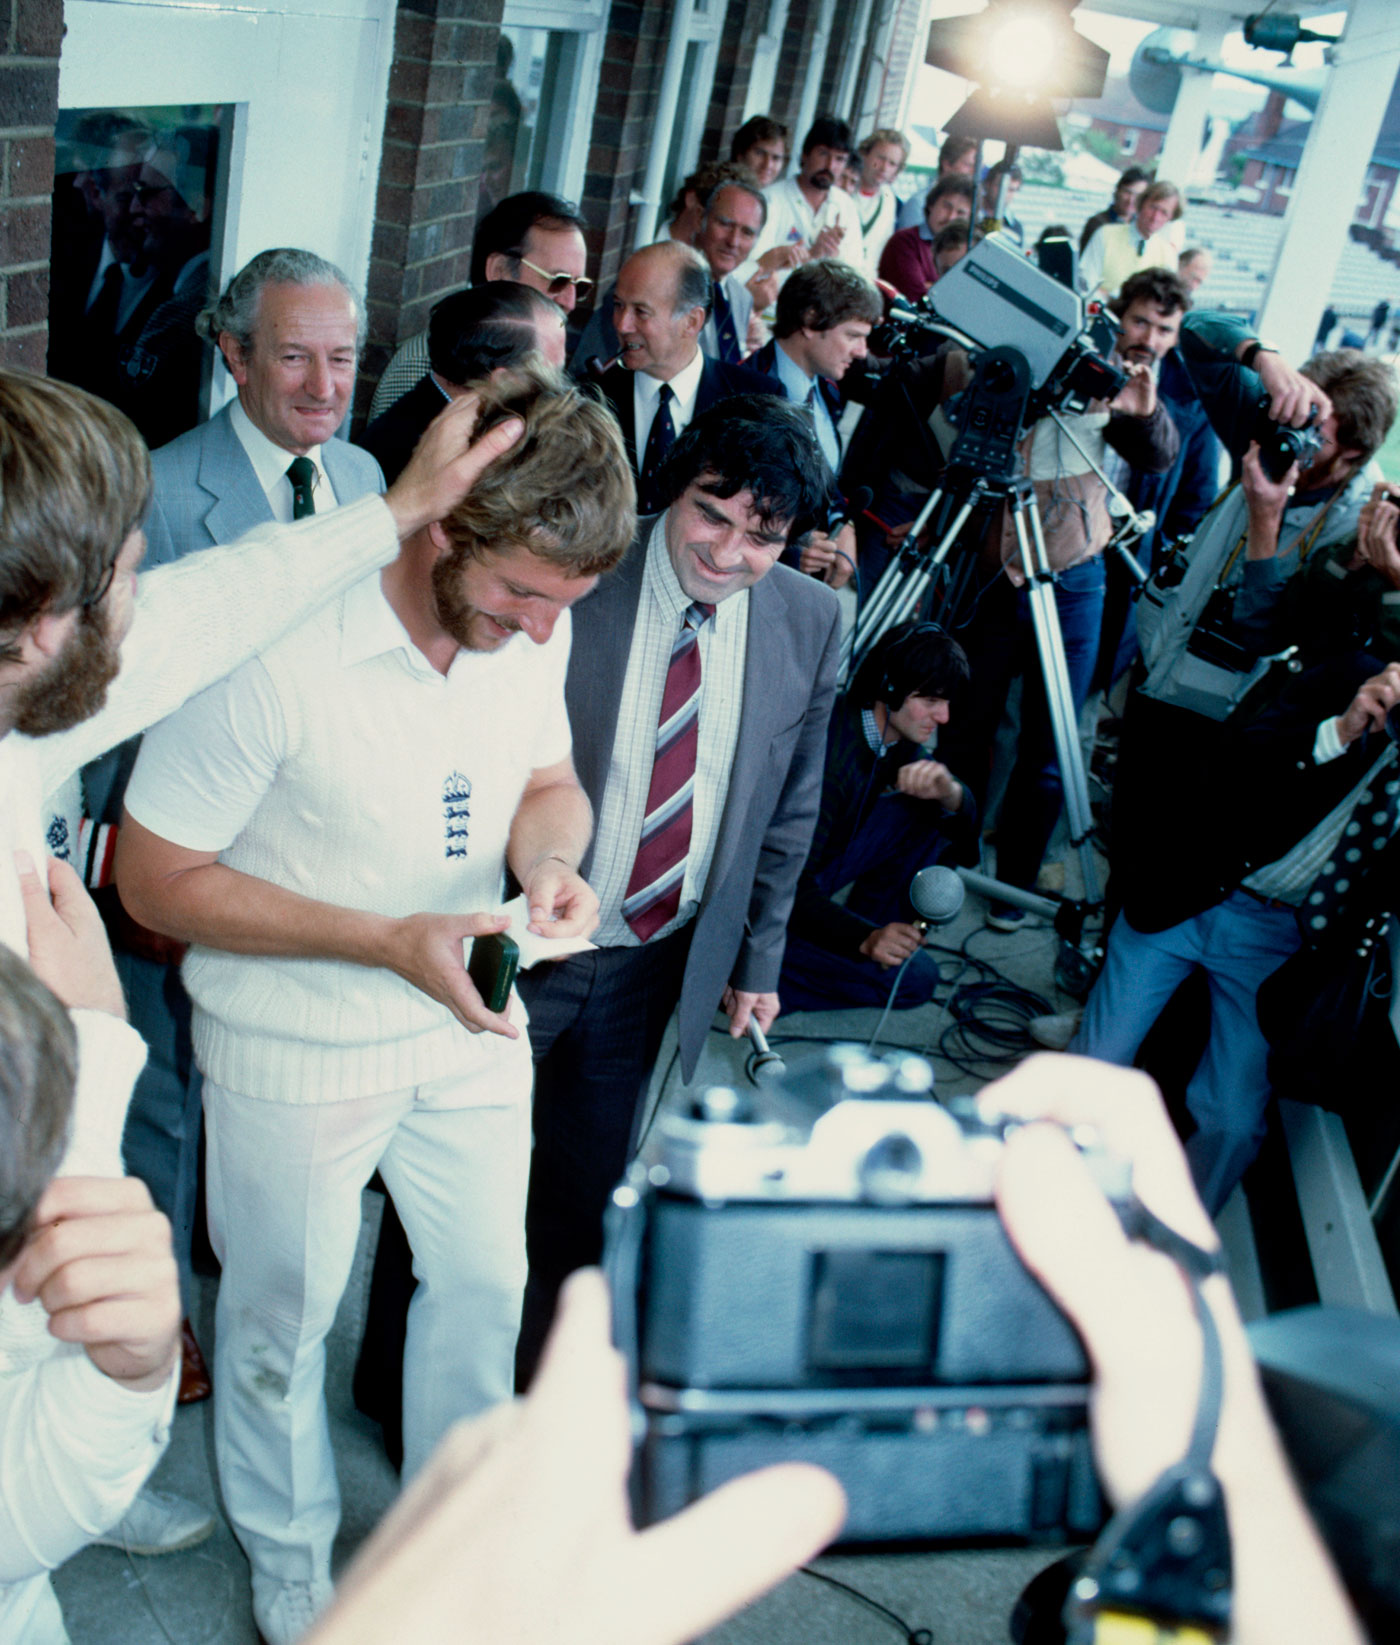 Ian Botham: for best results, taunt and sit back